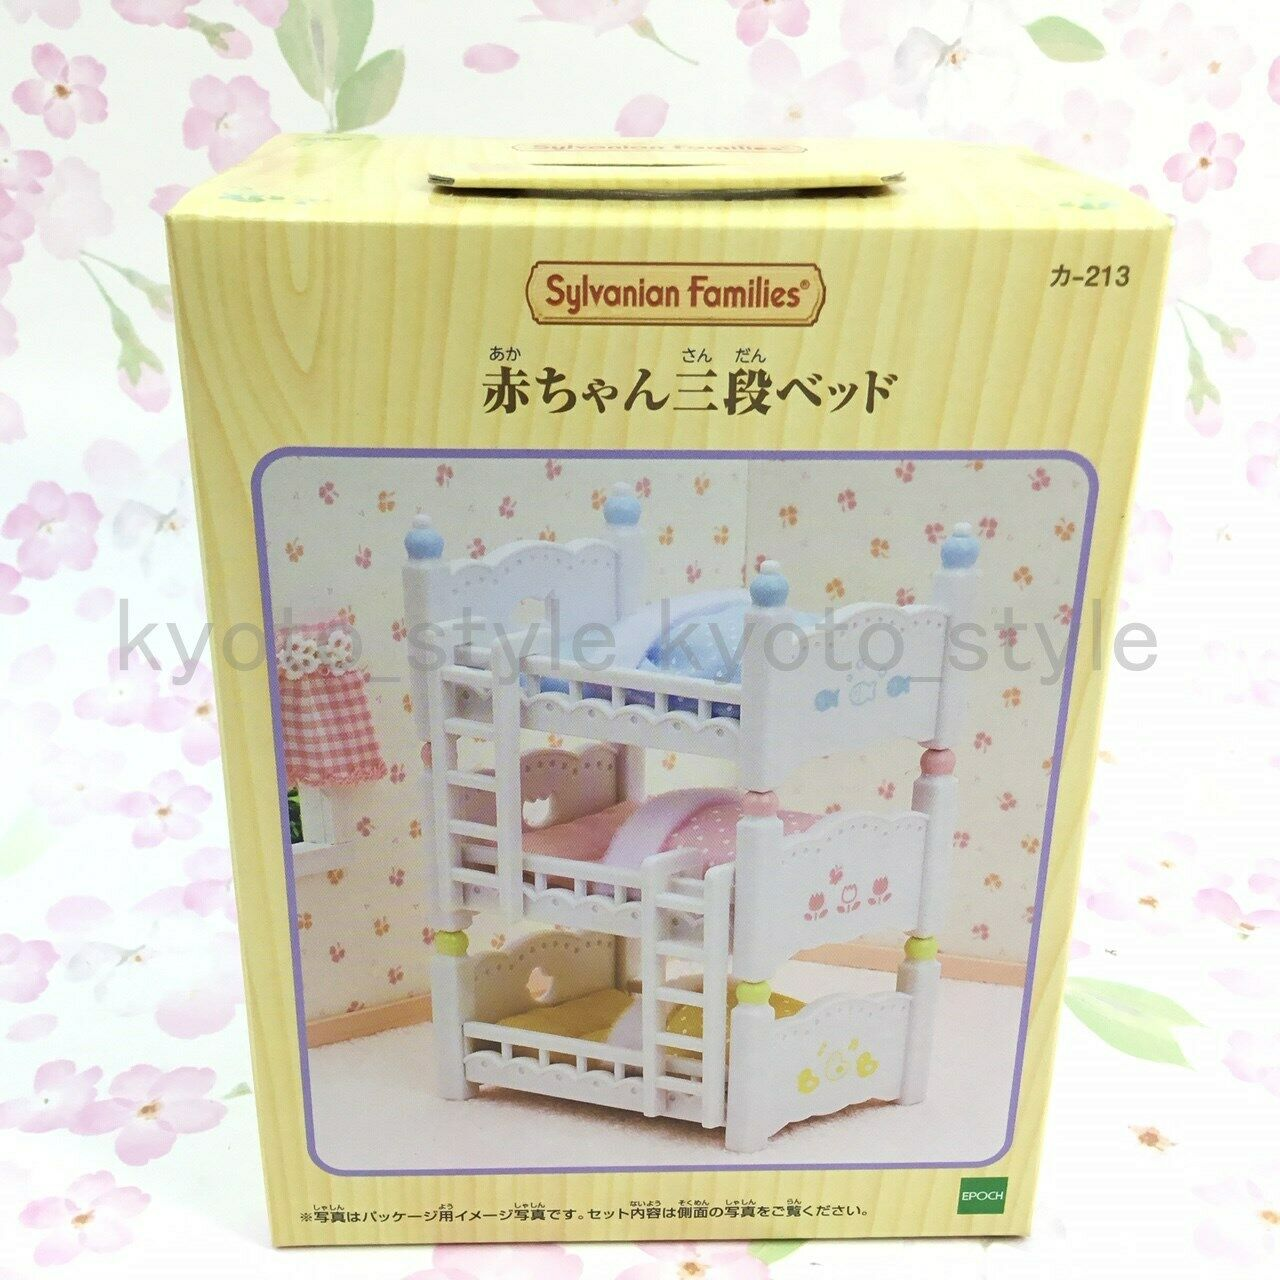 Epoch Sylvanian Families Furniture three stage Bed Ka-213